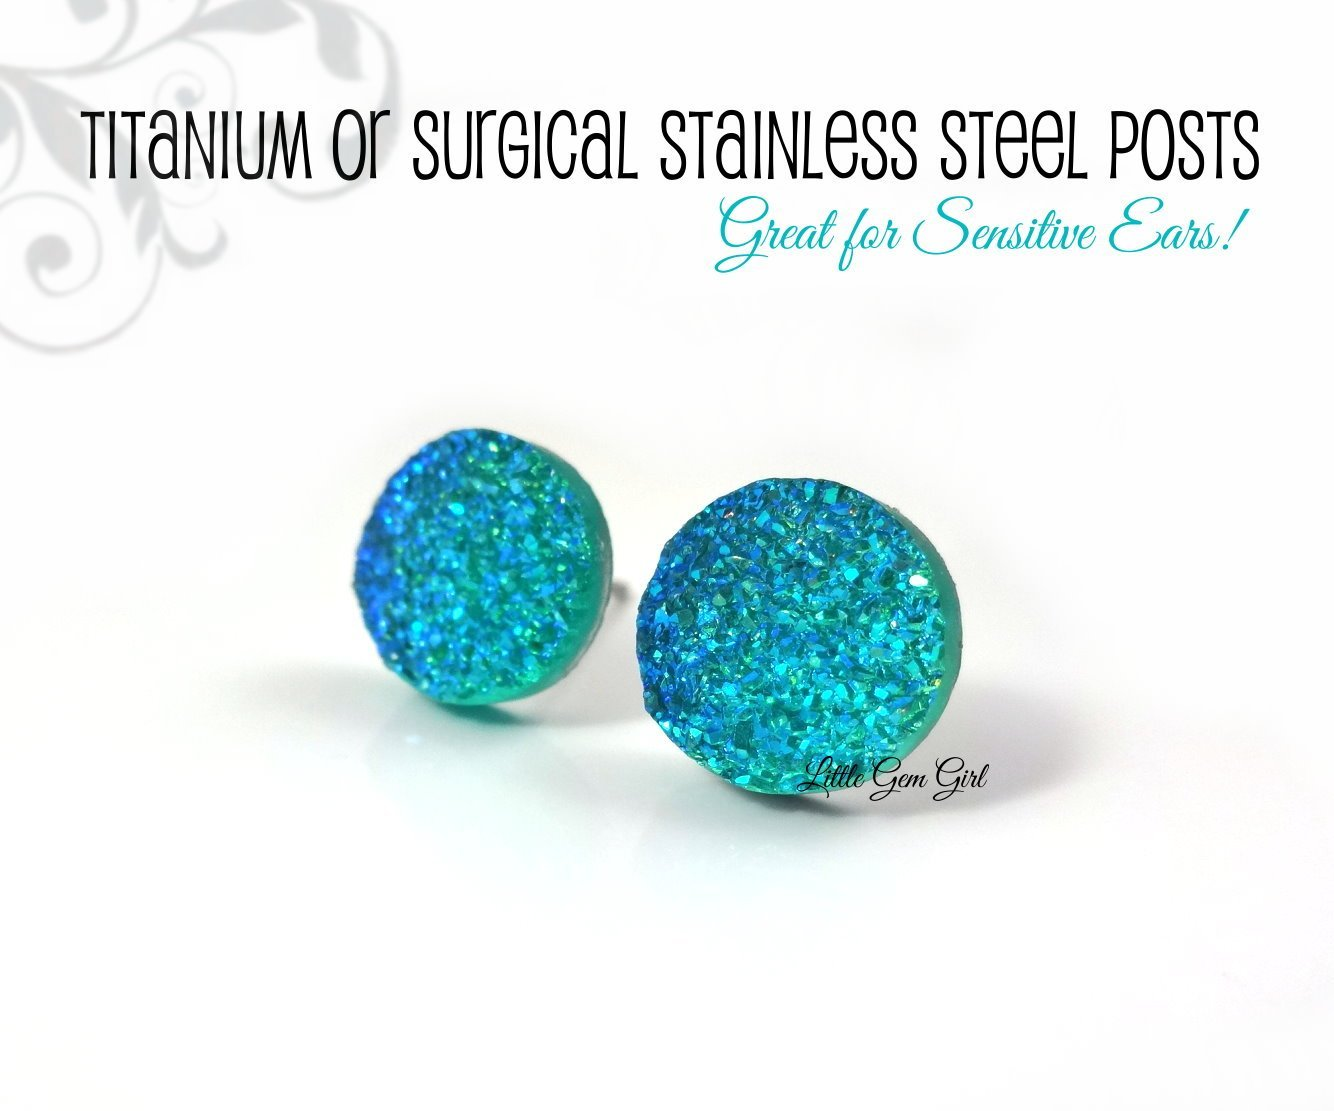 7274b21bb 10mm Aqua Blue Color Changing Faux Druzy Studs - Small Blue Glitter Studs -  Titanium or Surgical Stainless Steel Posts Nickel Free for Sensitive Ears  ...